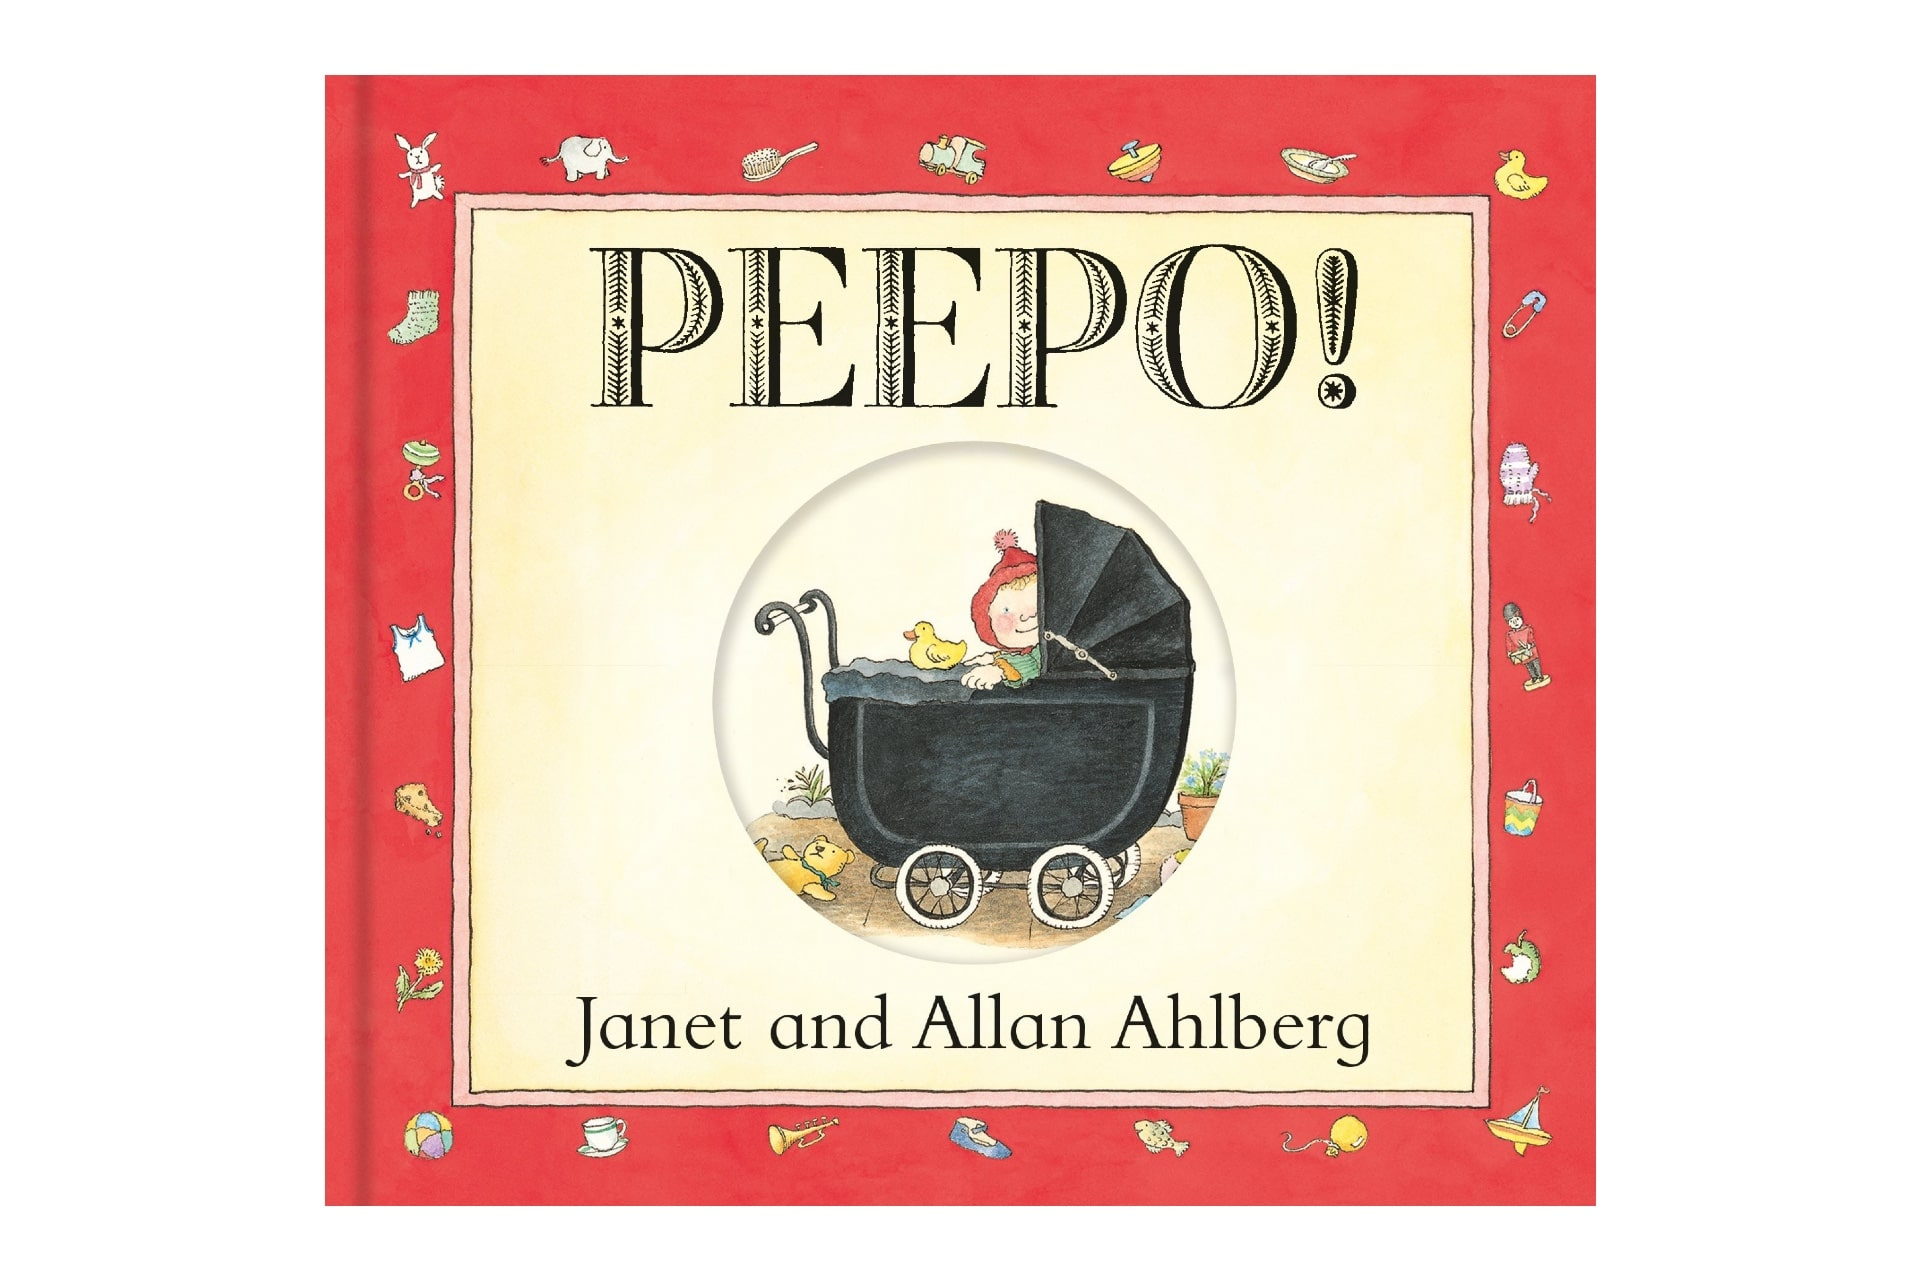 book cover with a baby in a carriage